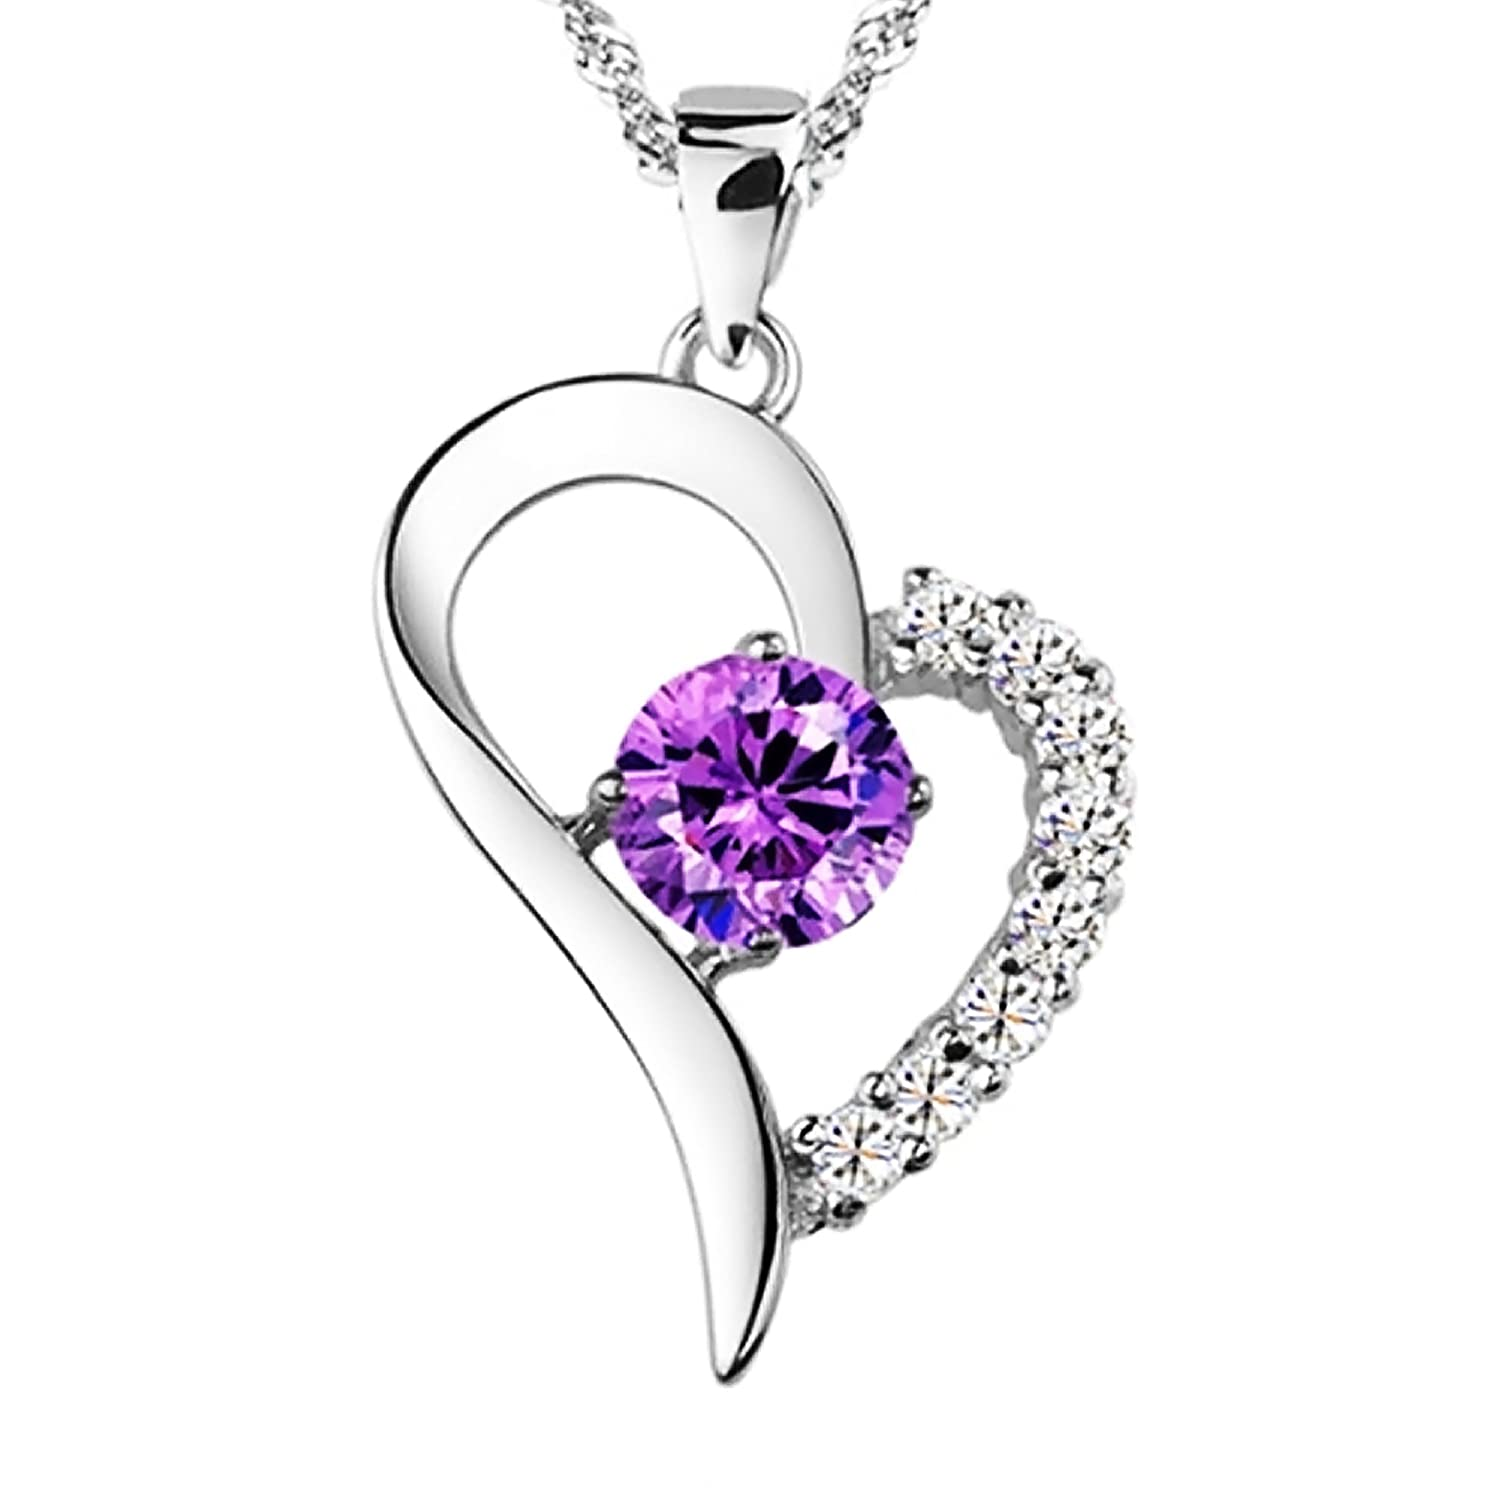 jewelry diamond wholesale fashion vintage silver necklace gift crystal number purple product sterling cat xmas cute woman cz white pendant